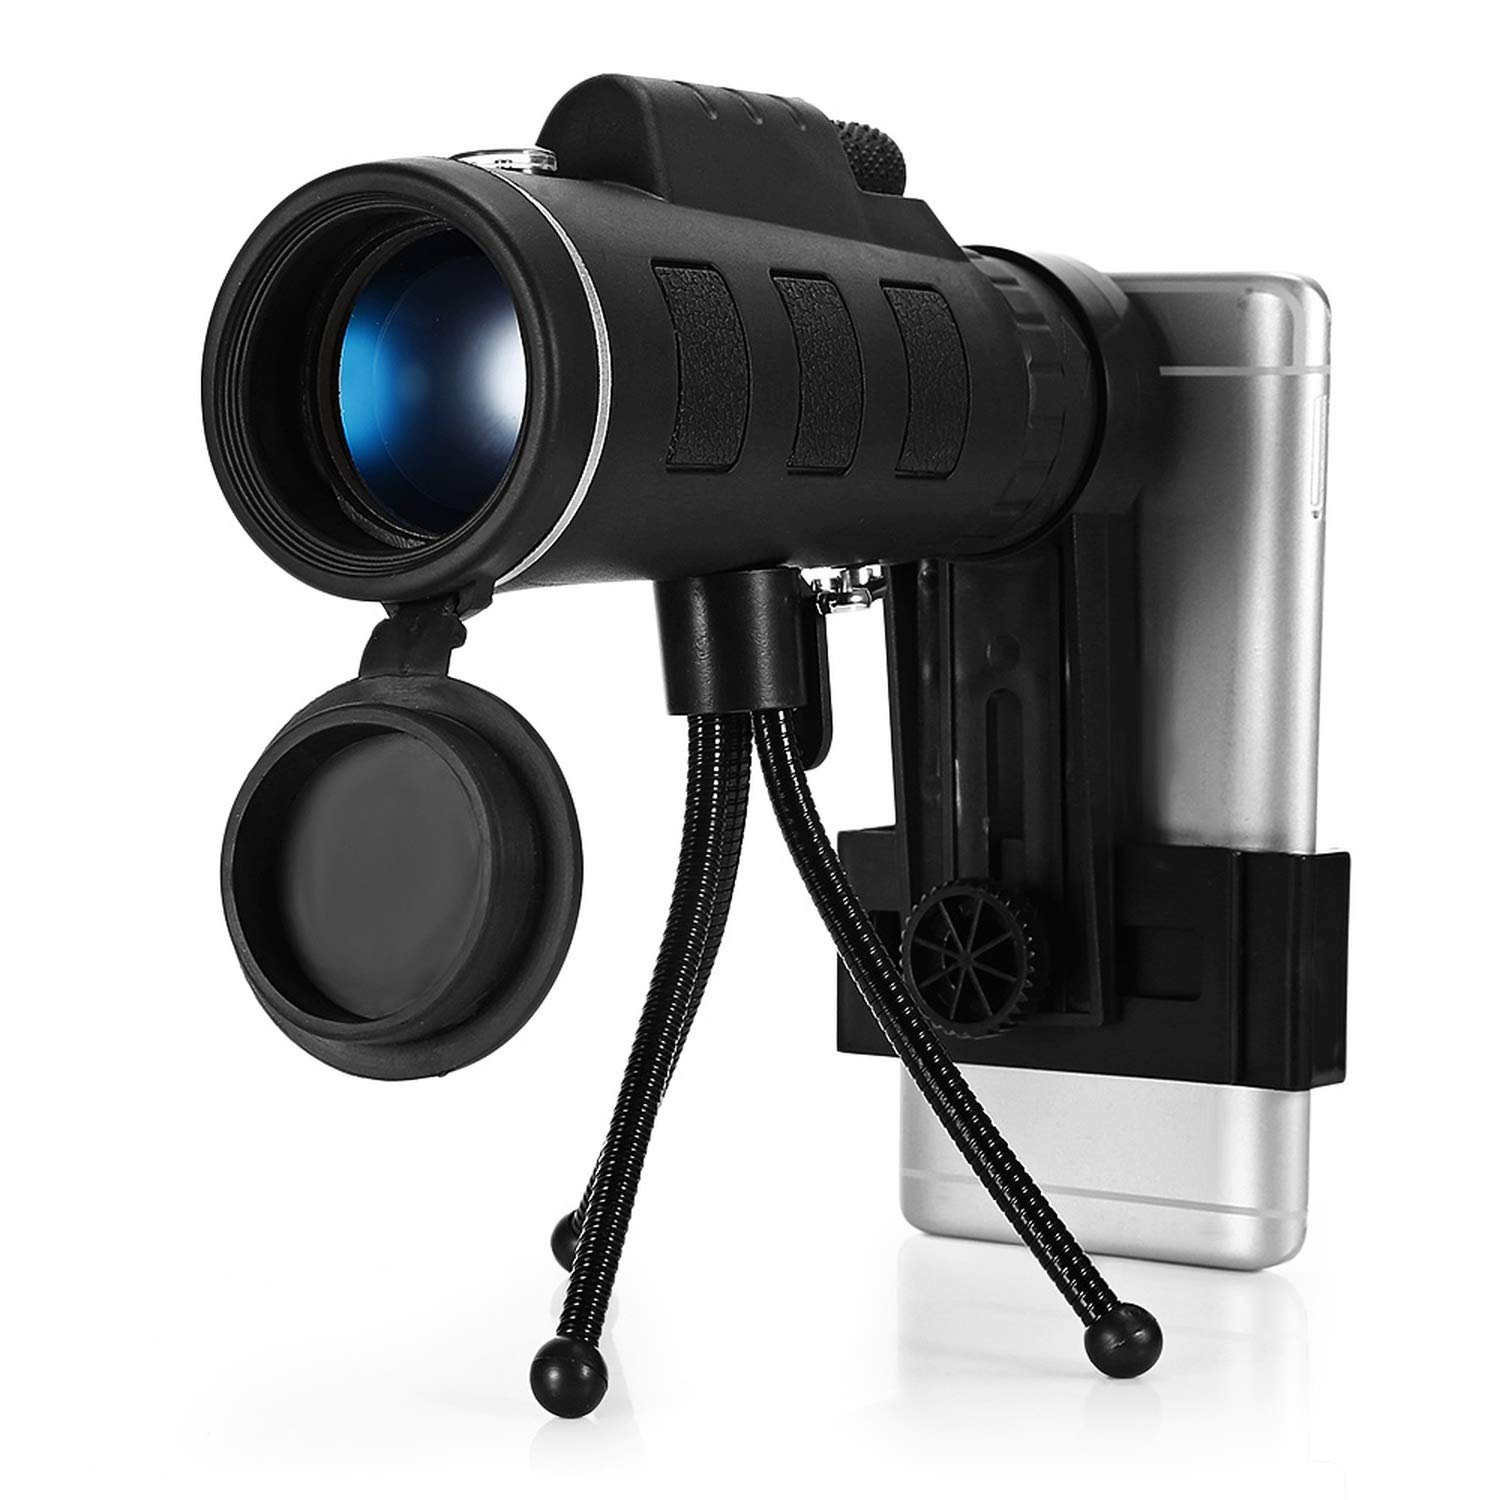 Crystal-heart-store 40X60 Monocular Monocular Telescope Hd Night Vision Prism Scope with Compass Phone Clip Tripod,Black by Crystal-heart-store